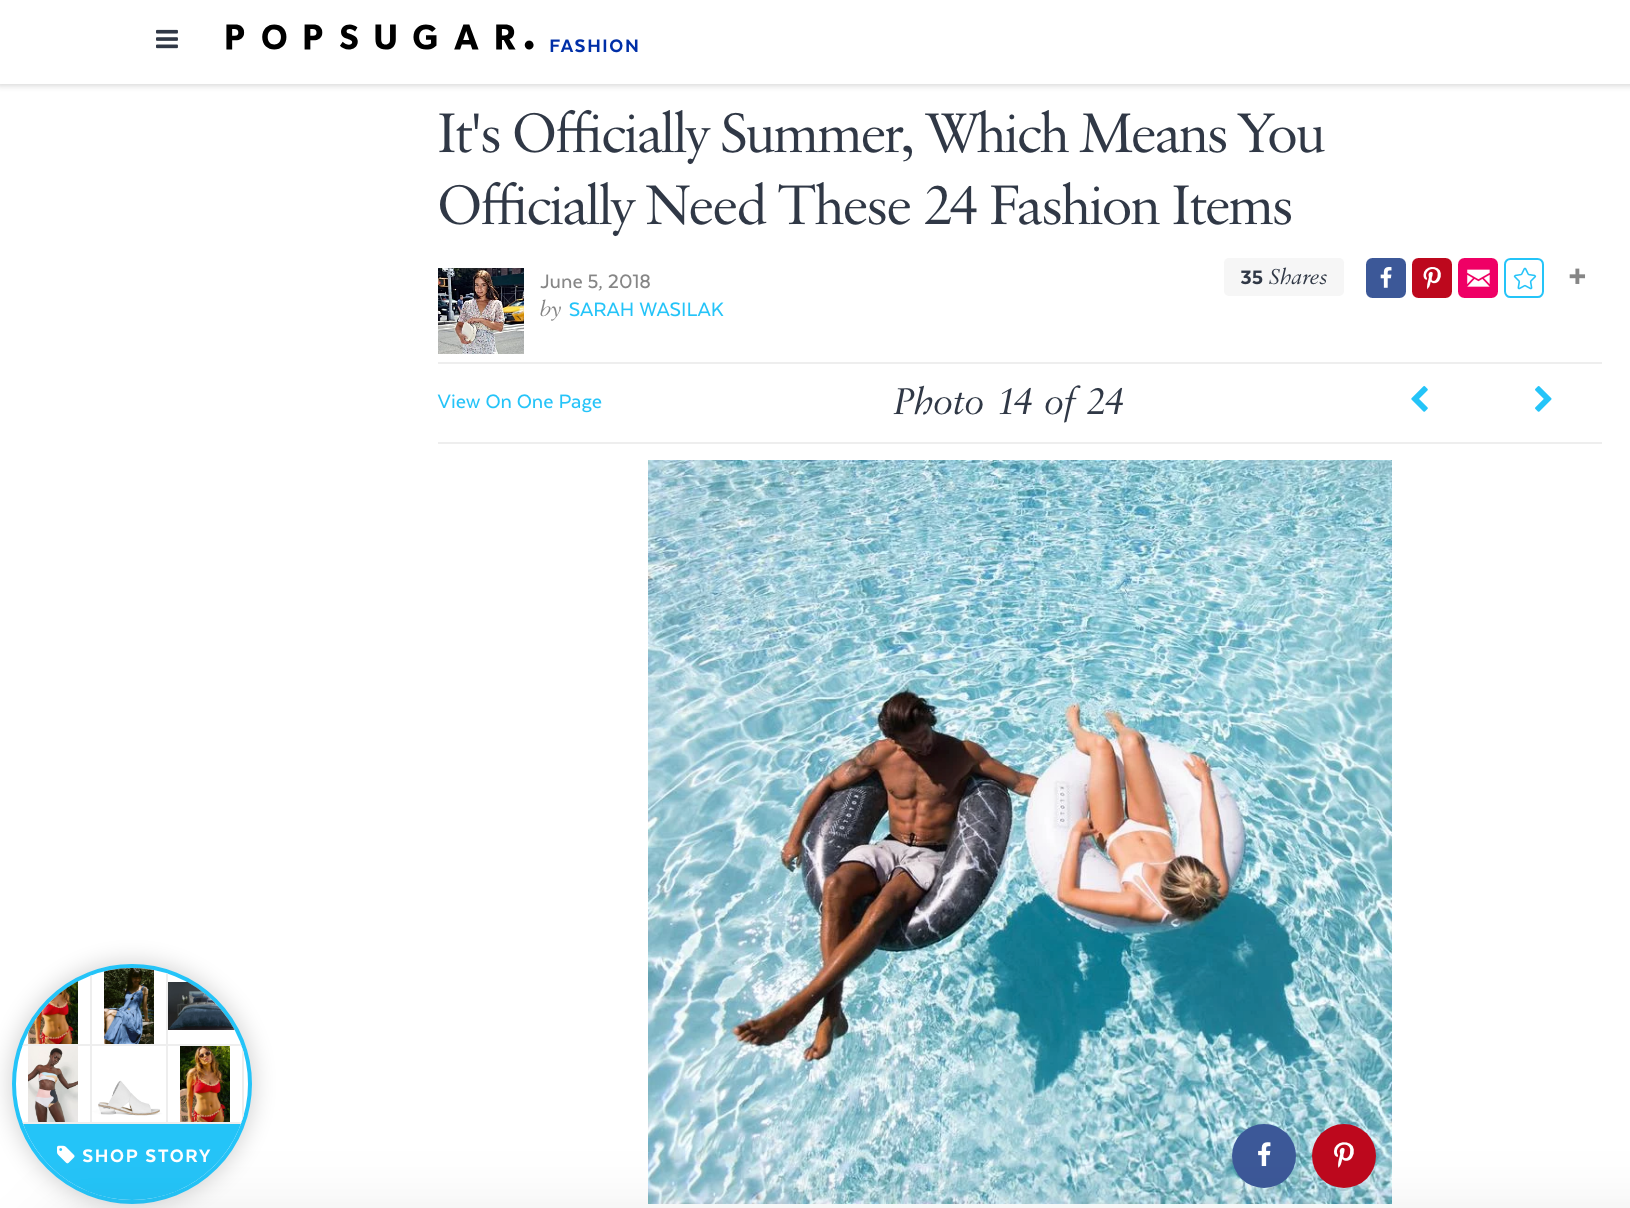 POPSUGAR: It's Officially Summer, Which Means You Officially Need These 24 Fashion Items